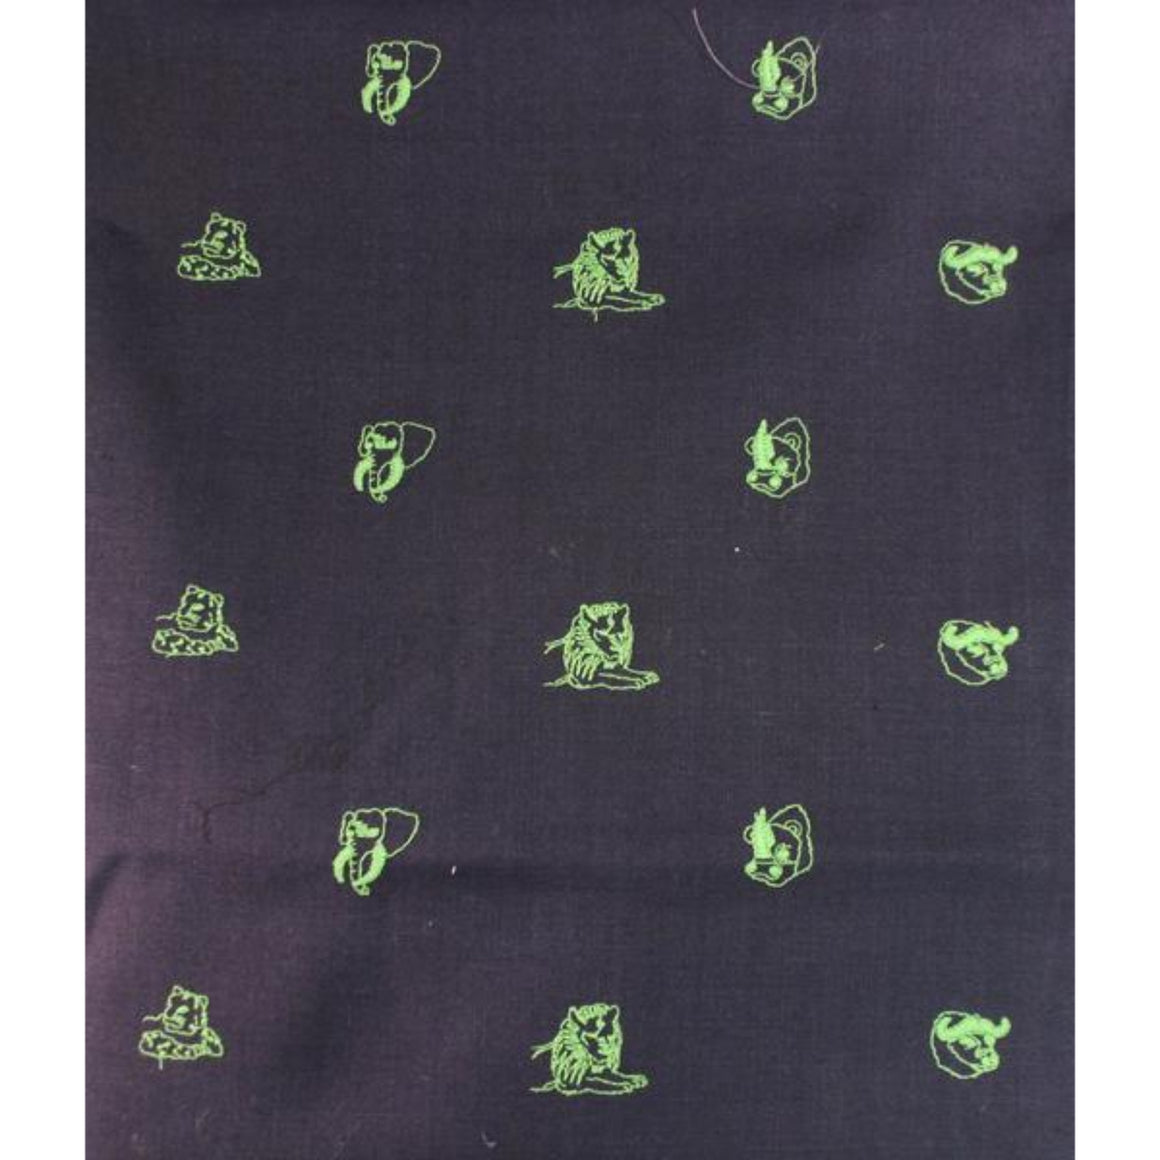 'Chipp Irish Moygashel Linen Fabric w/ Lime 'Big Game' Animal Embroidery'